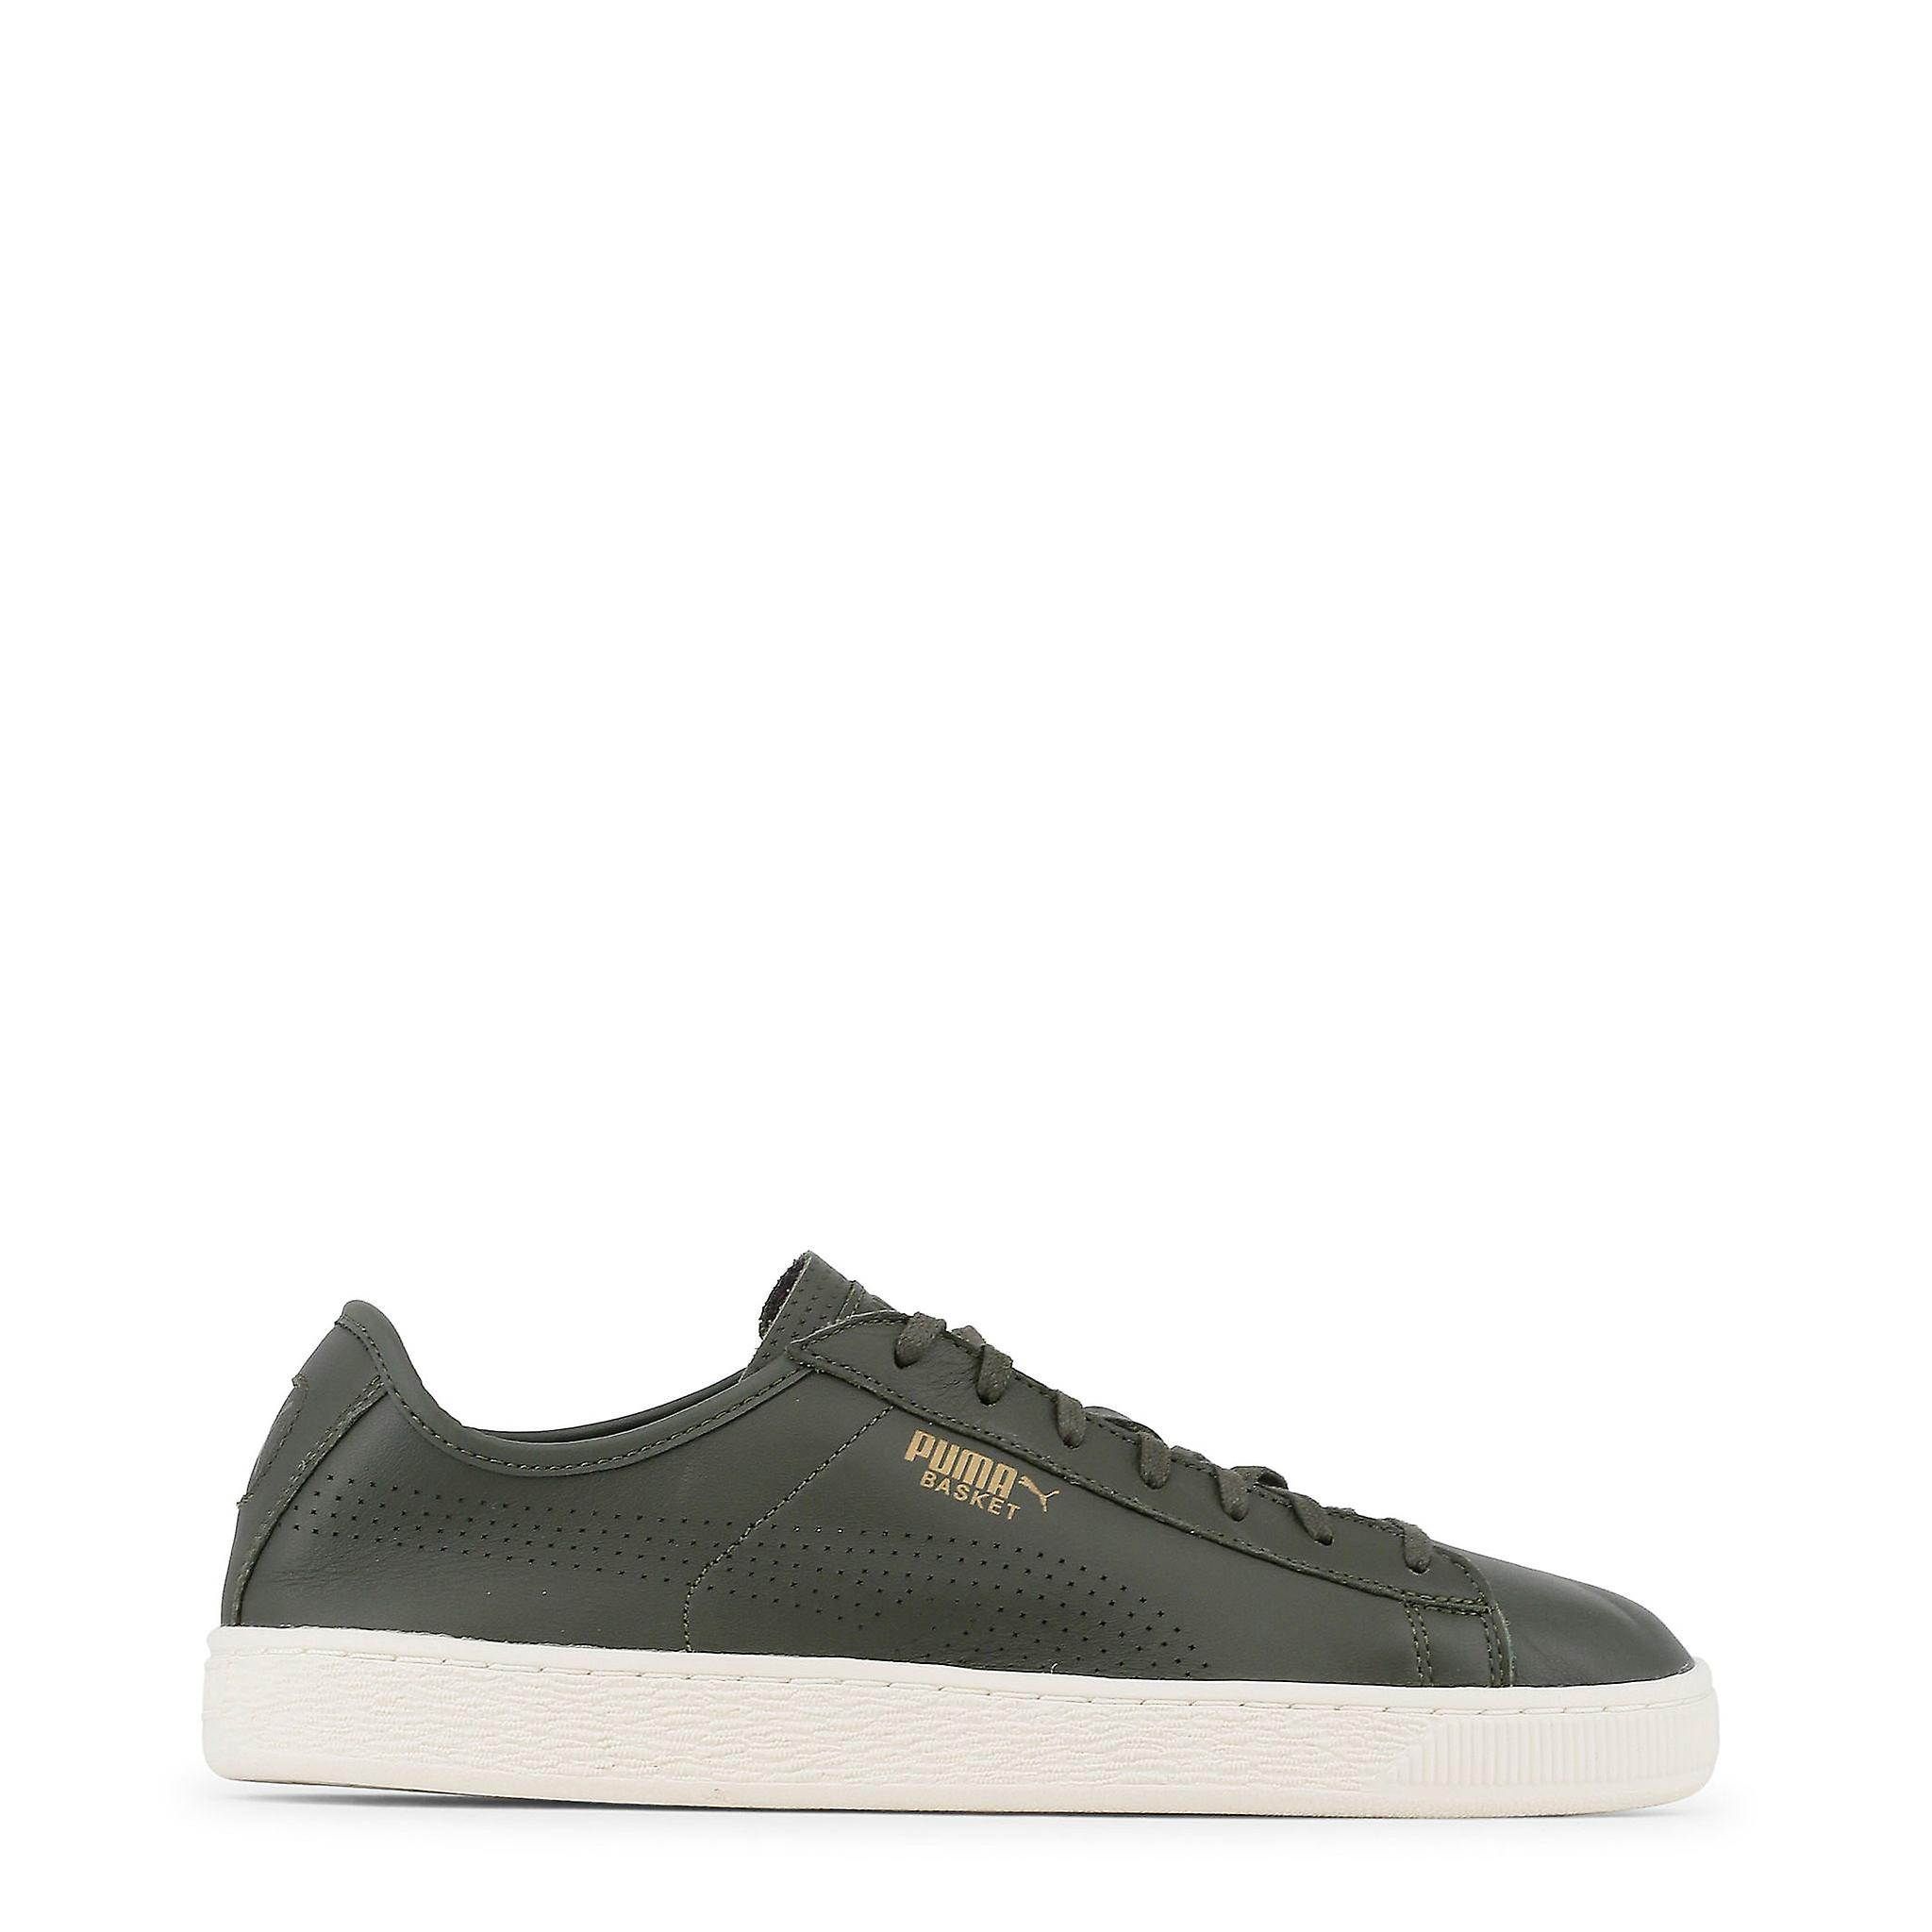 Puma Puma Puma - 363824 Men's Sneakers Shoe cf208d